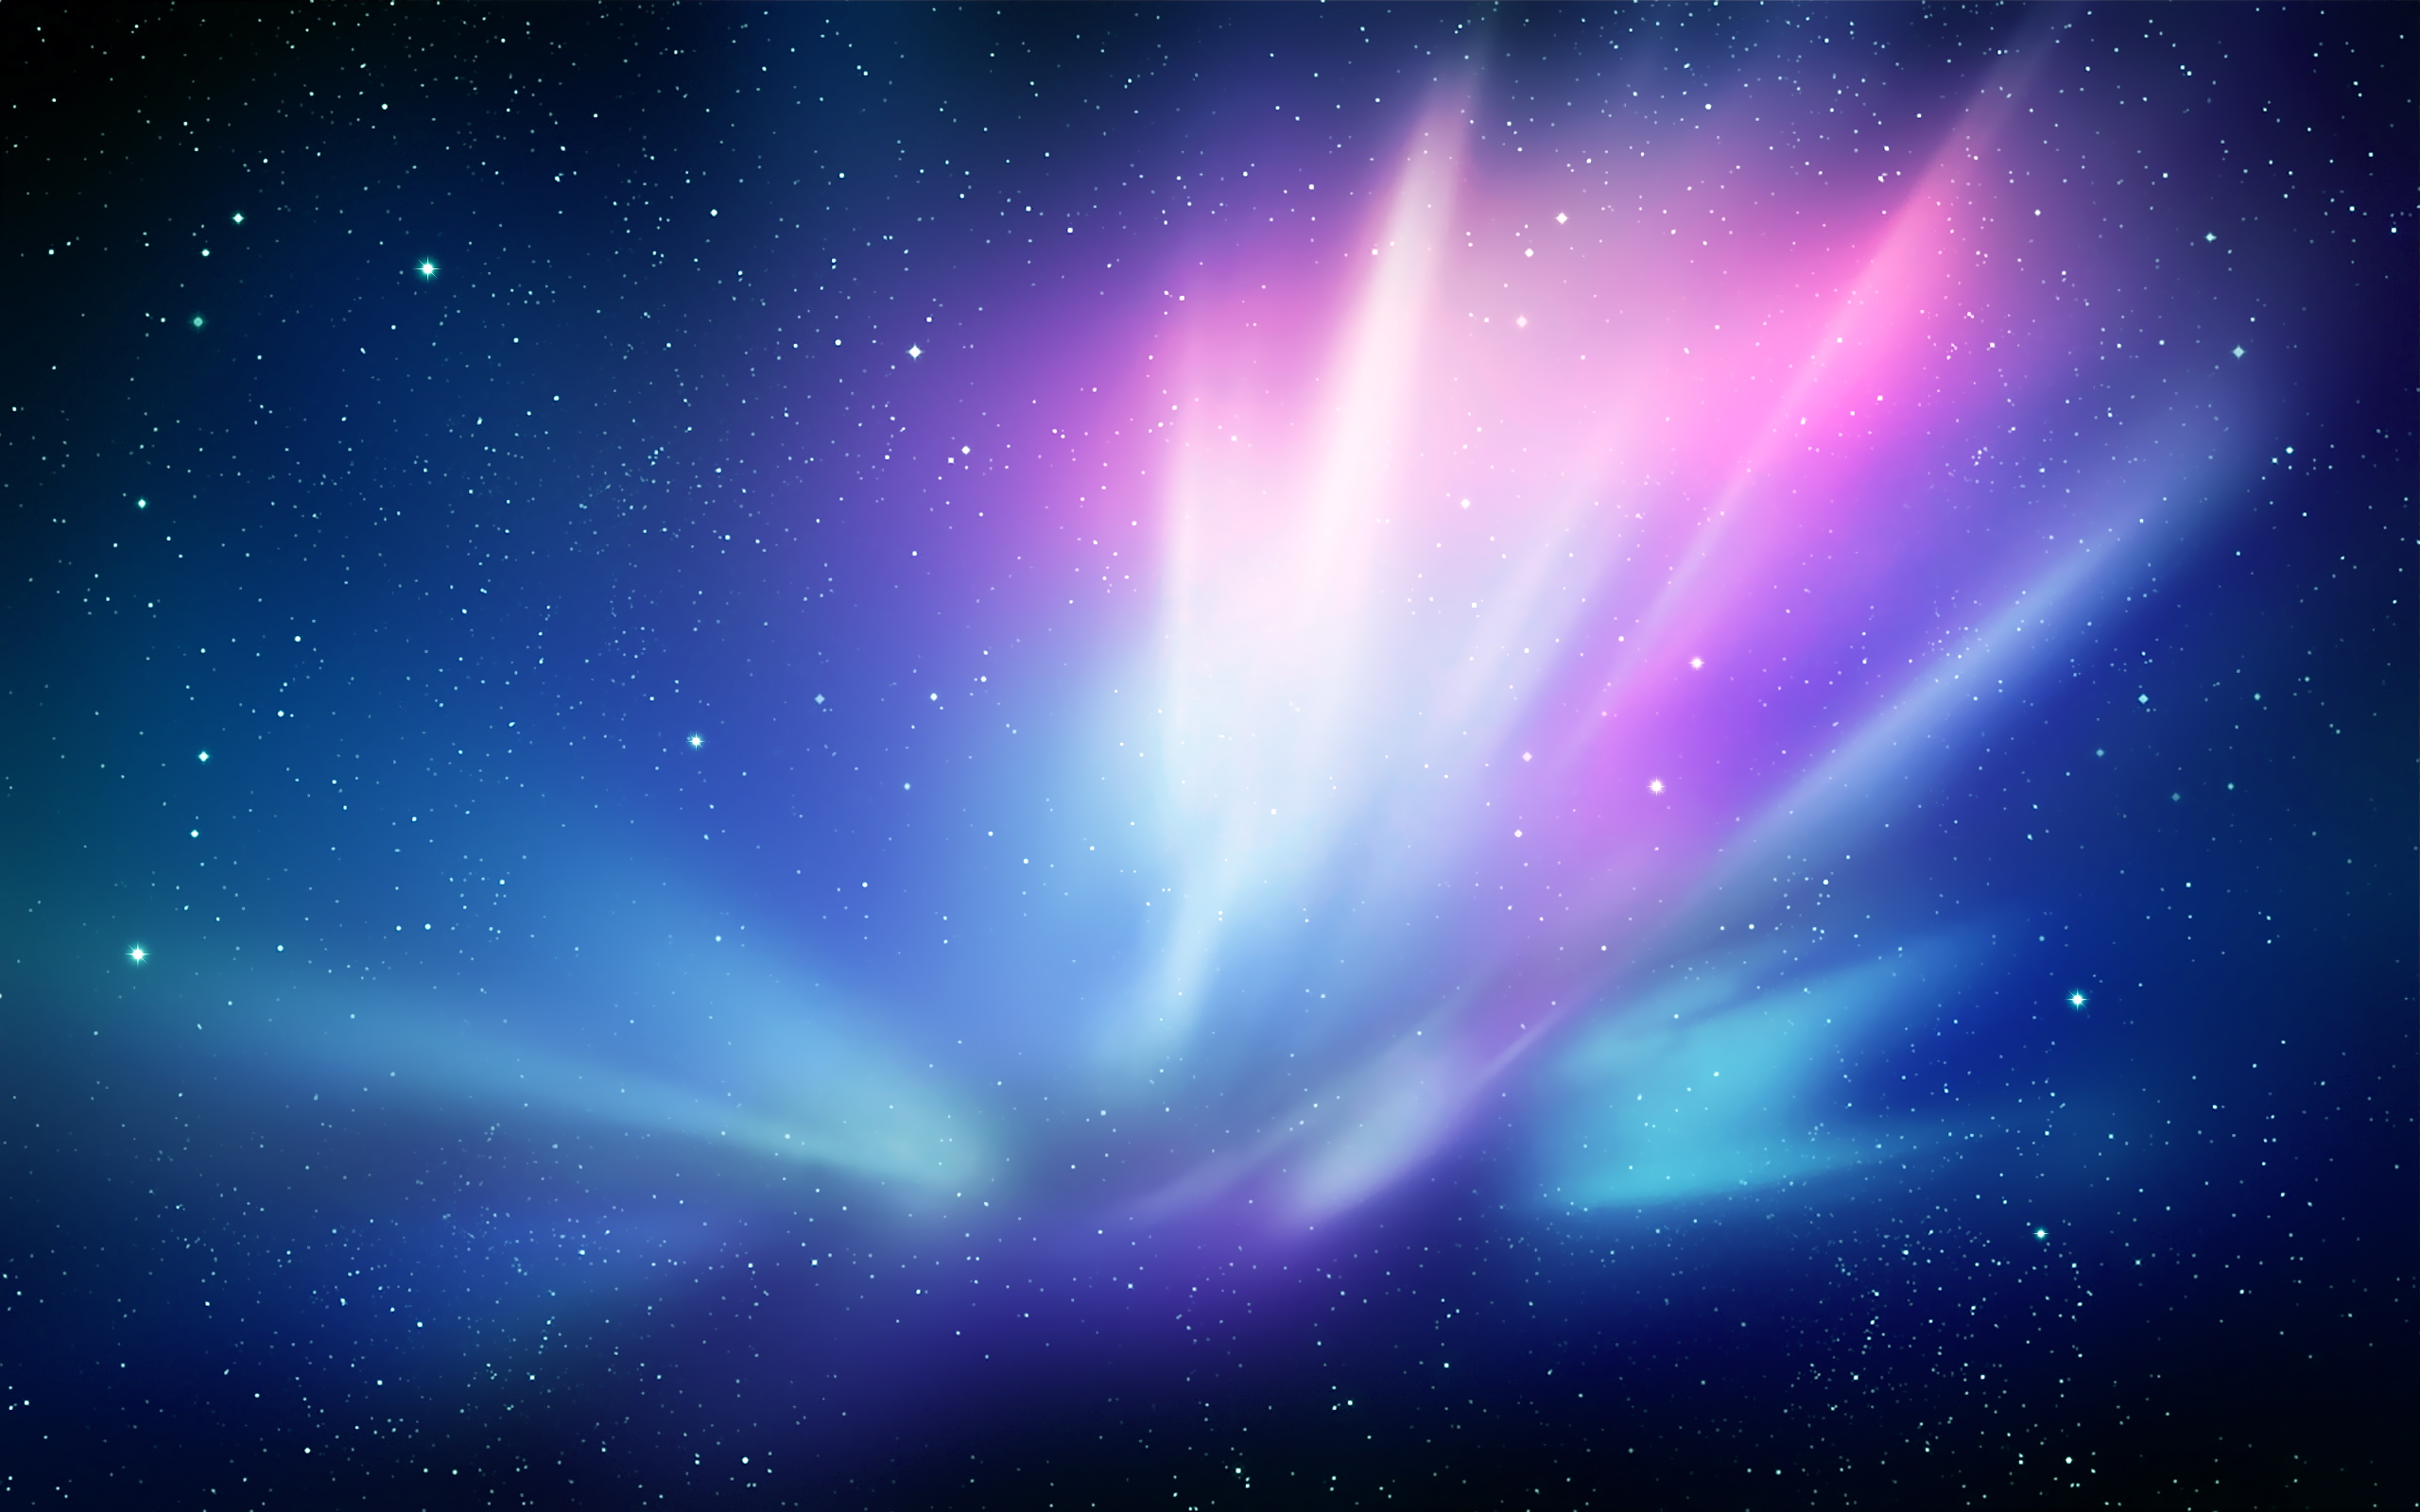 Apple Galaxy Wallpapers HD - Scerbos com